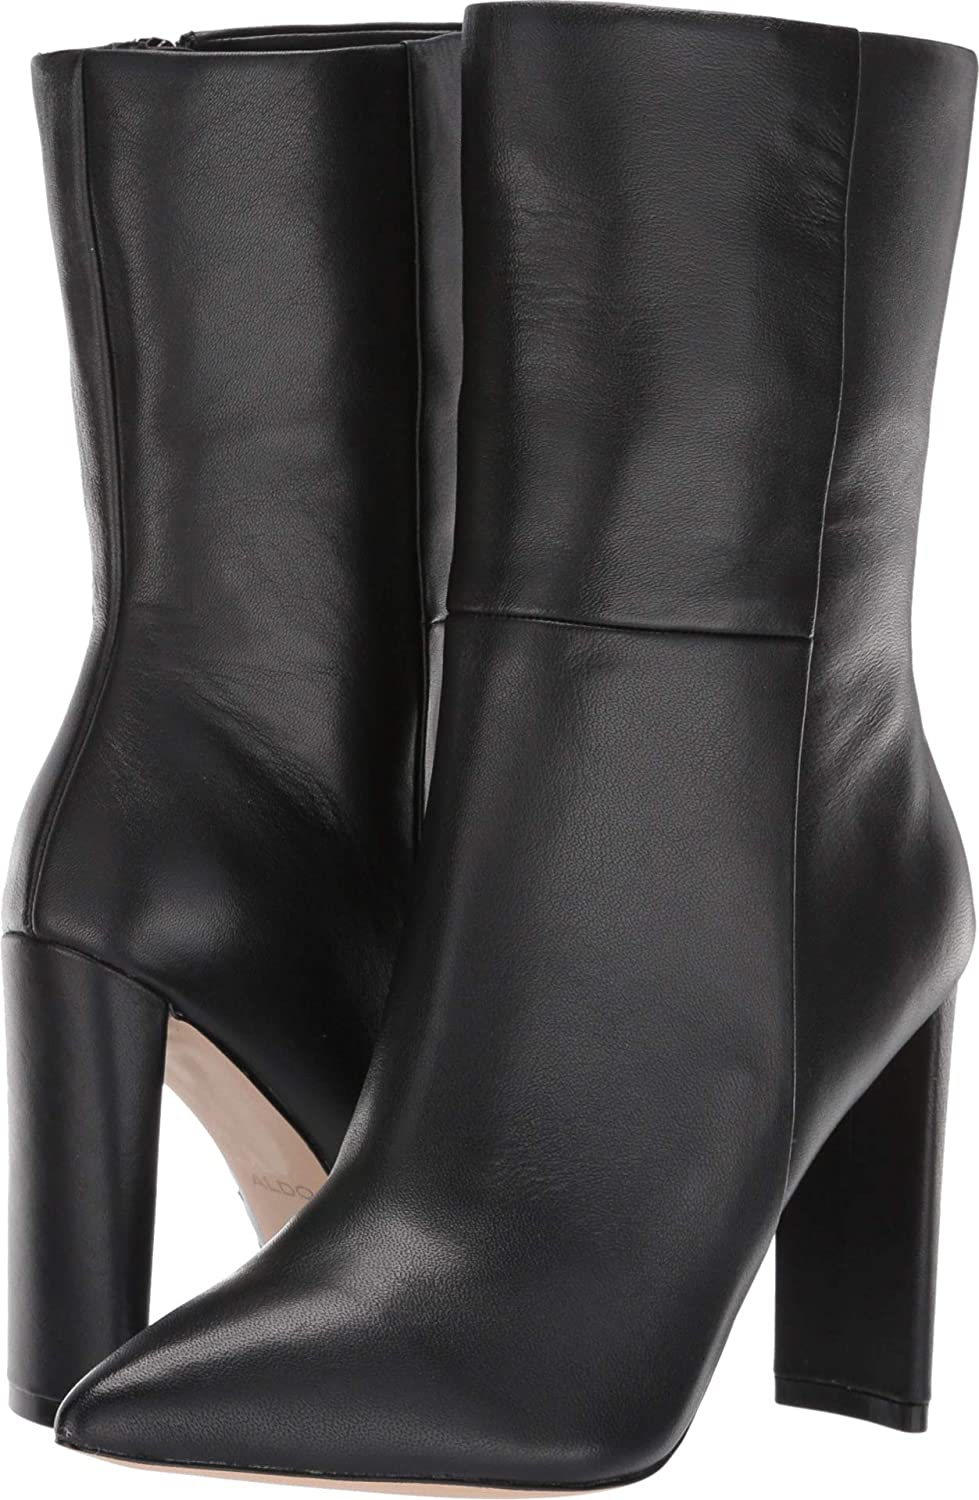 Aldo Womens Pointed Toe Ankle Fashion Boots, Black, Size 7.0